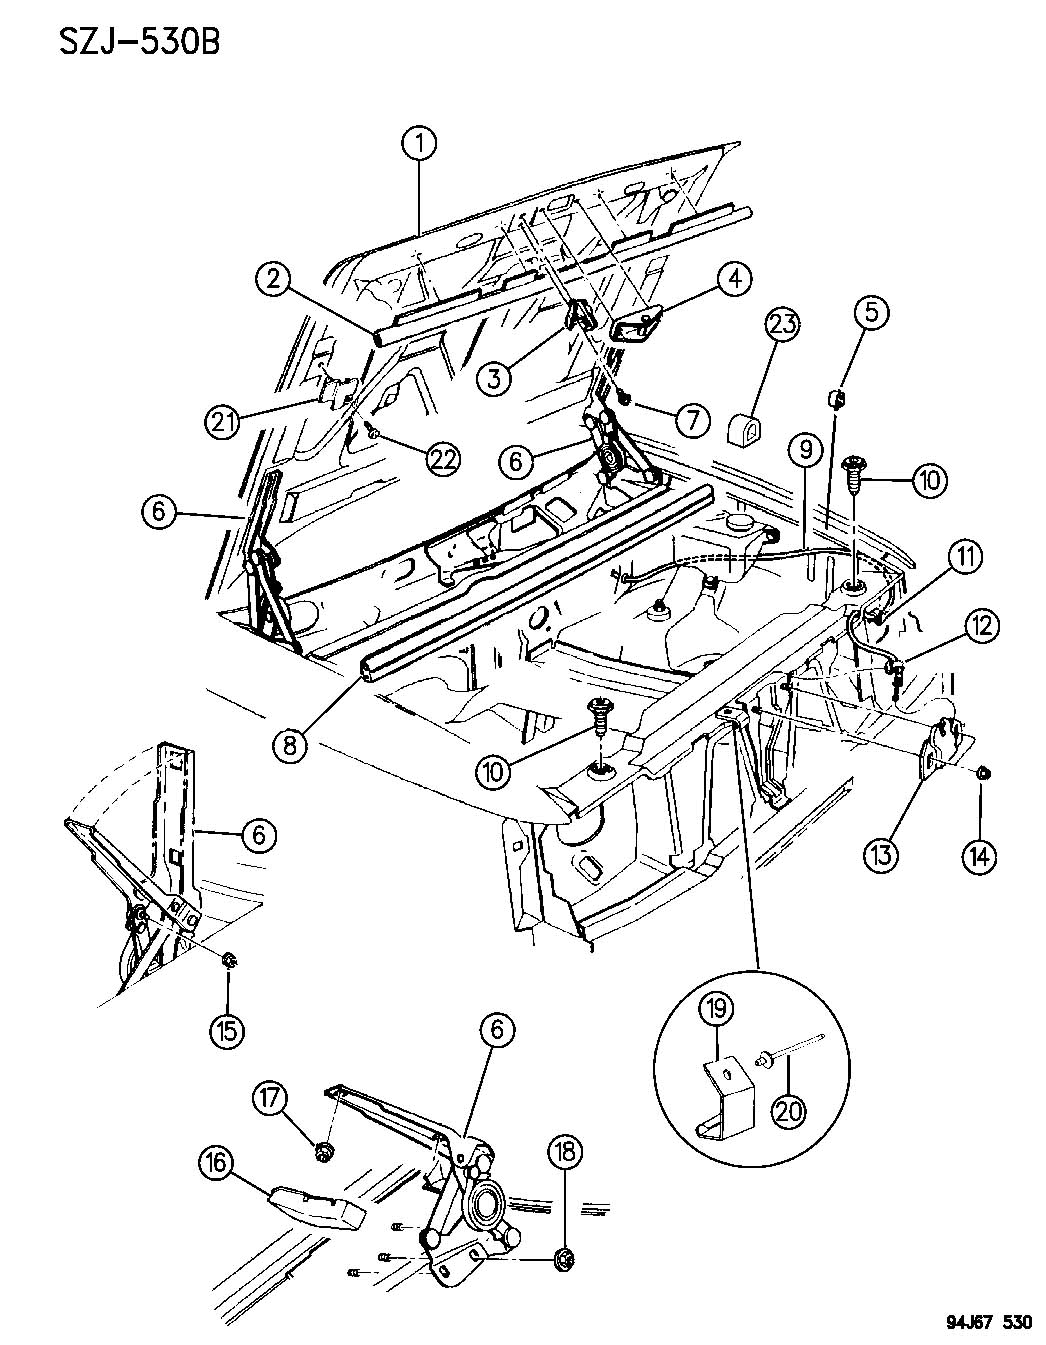 95 Buick Century Engine Diagram also 2003 F250 4x4 Front End Suspension Diagram further Pt Cruiser Ac Low Pressure Switch Location besides  further 94 Ford F 150 Exhaust System Diagram. on ford econoline wiring schematic